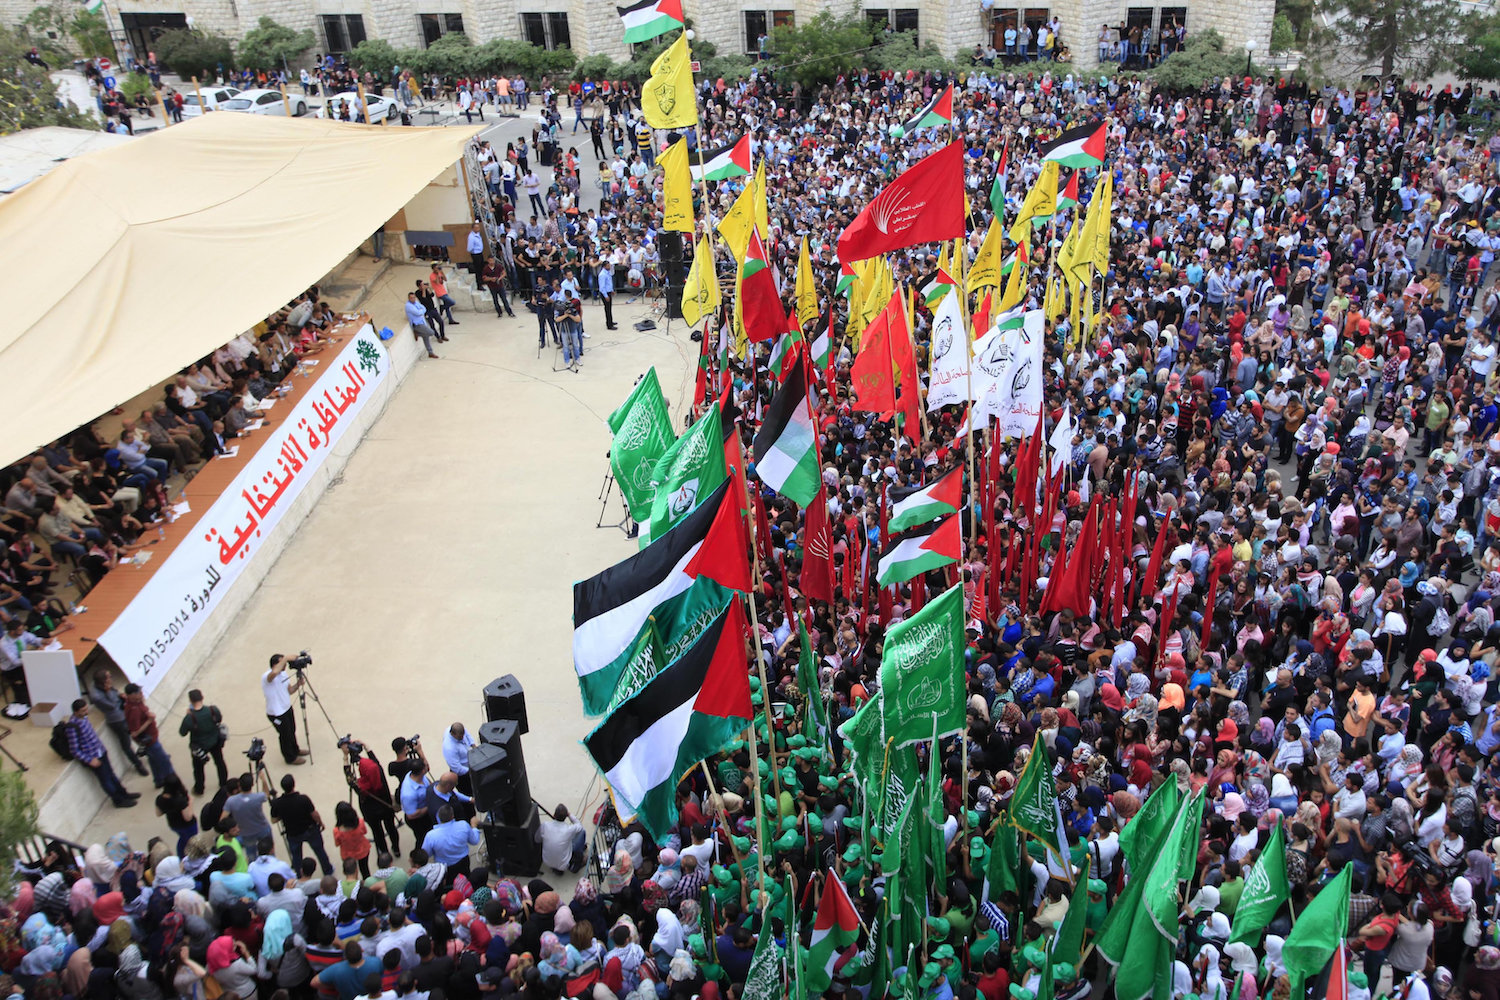 Palestinian students from the various political factions attend a rally prior to the Birzeit University student council elections, May 6, 2014. (Issam Rimawi/Flash90)